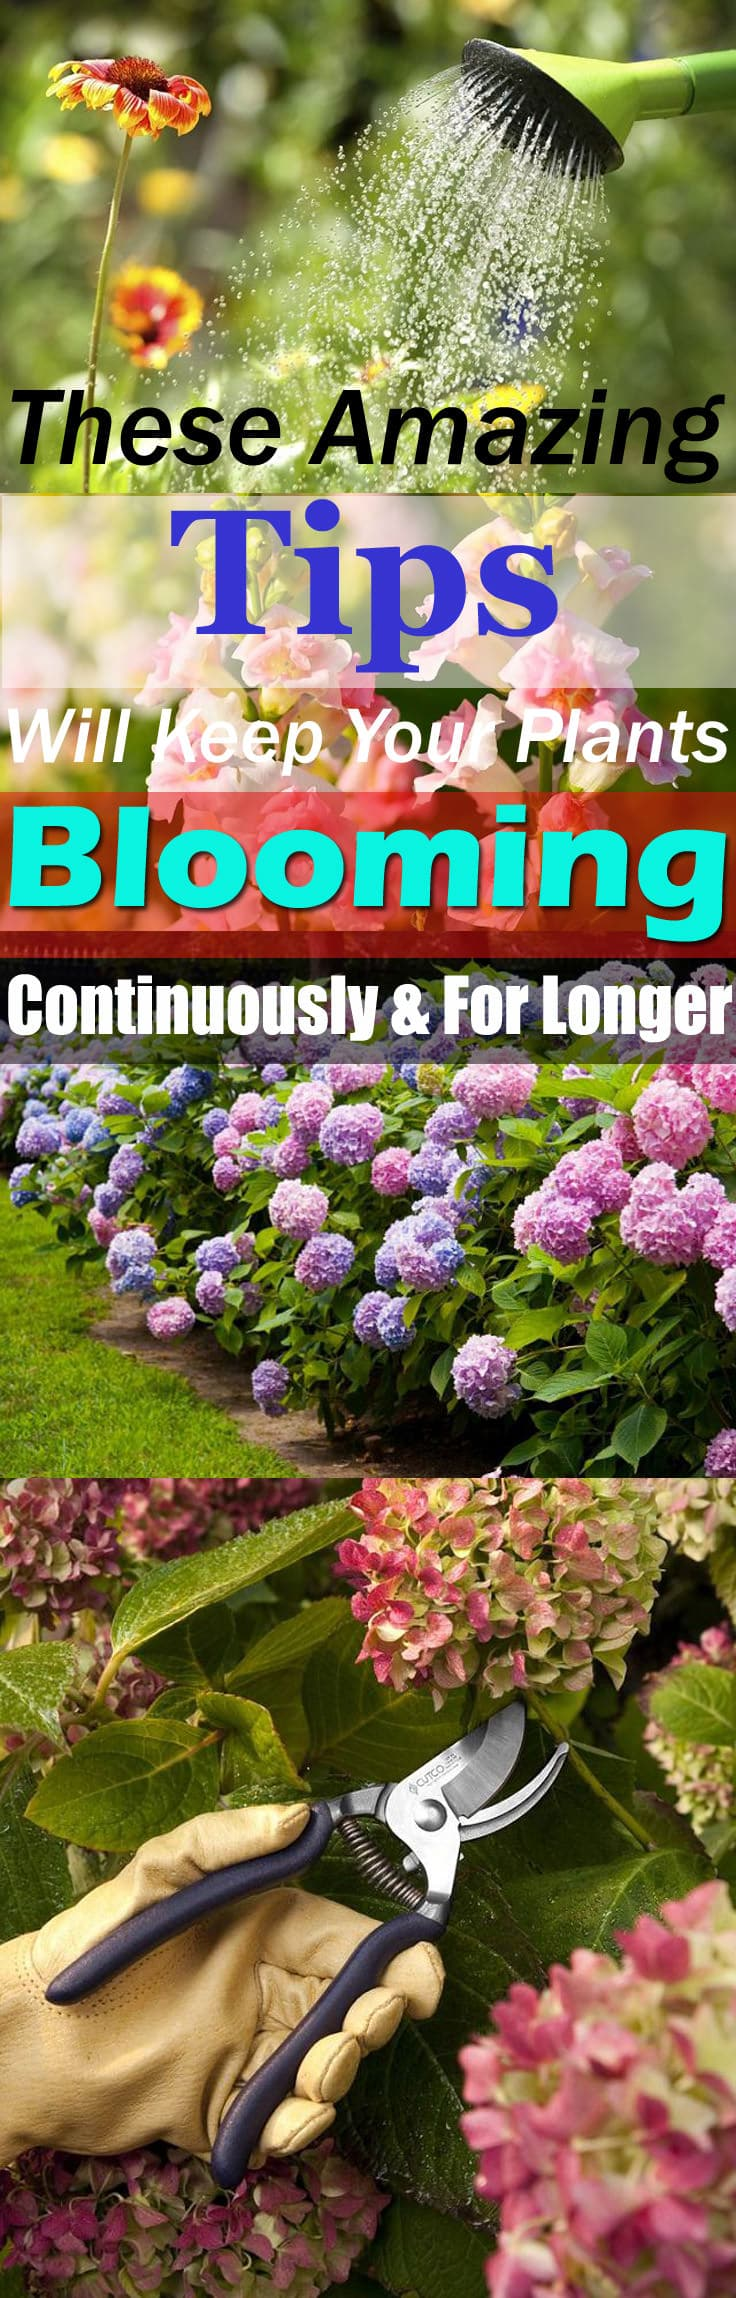 These Amazing Tips Will Keep Your Plants Blooming Continuously And ...